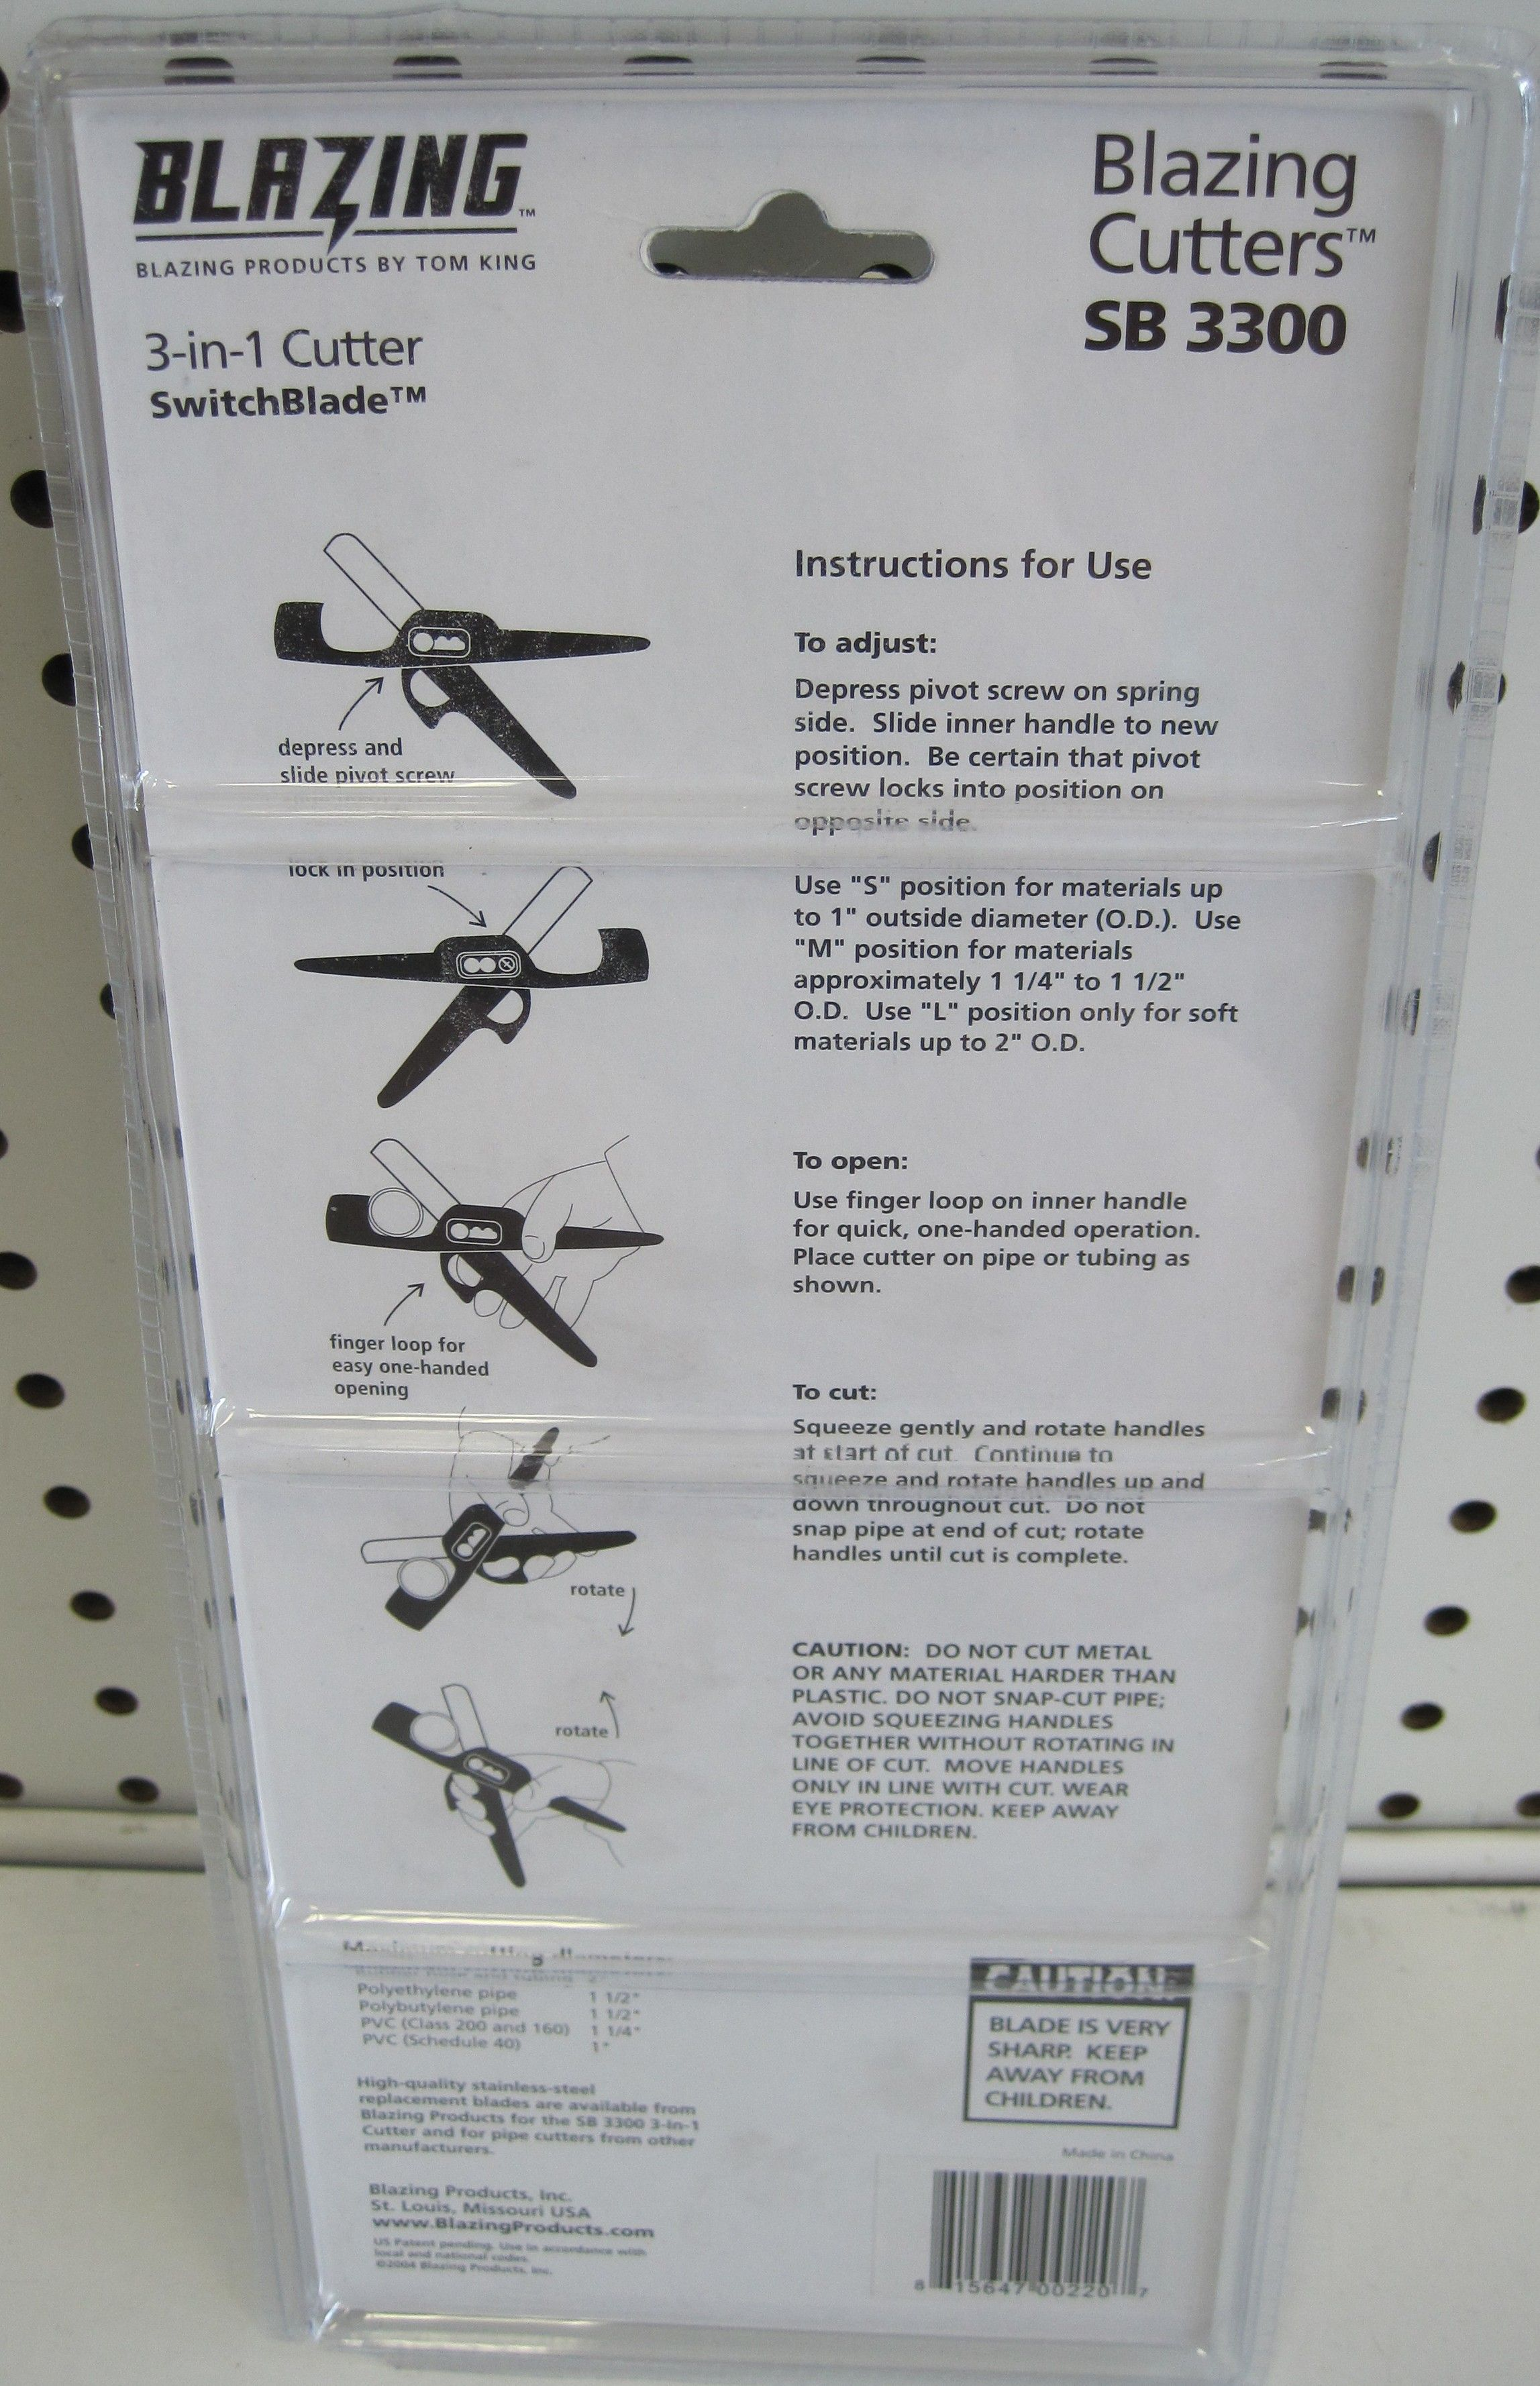 safety instructions on the Blazing 3-in-1 cutter